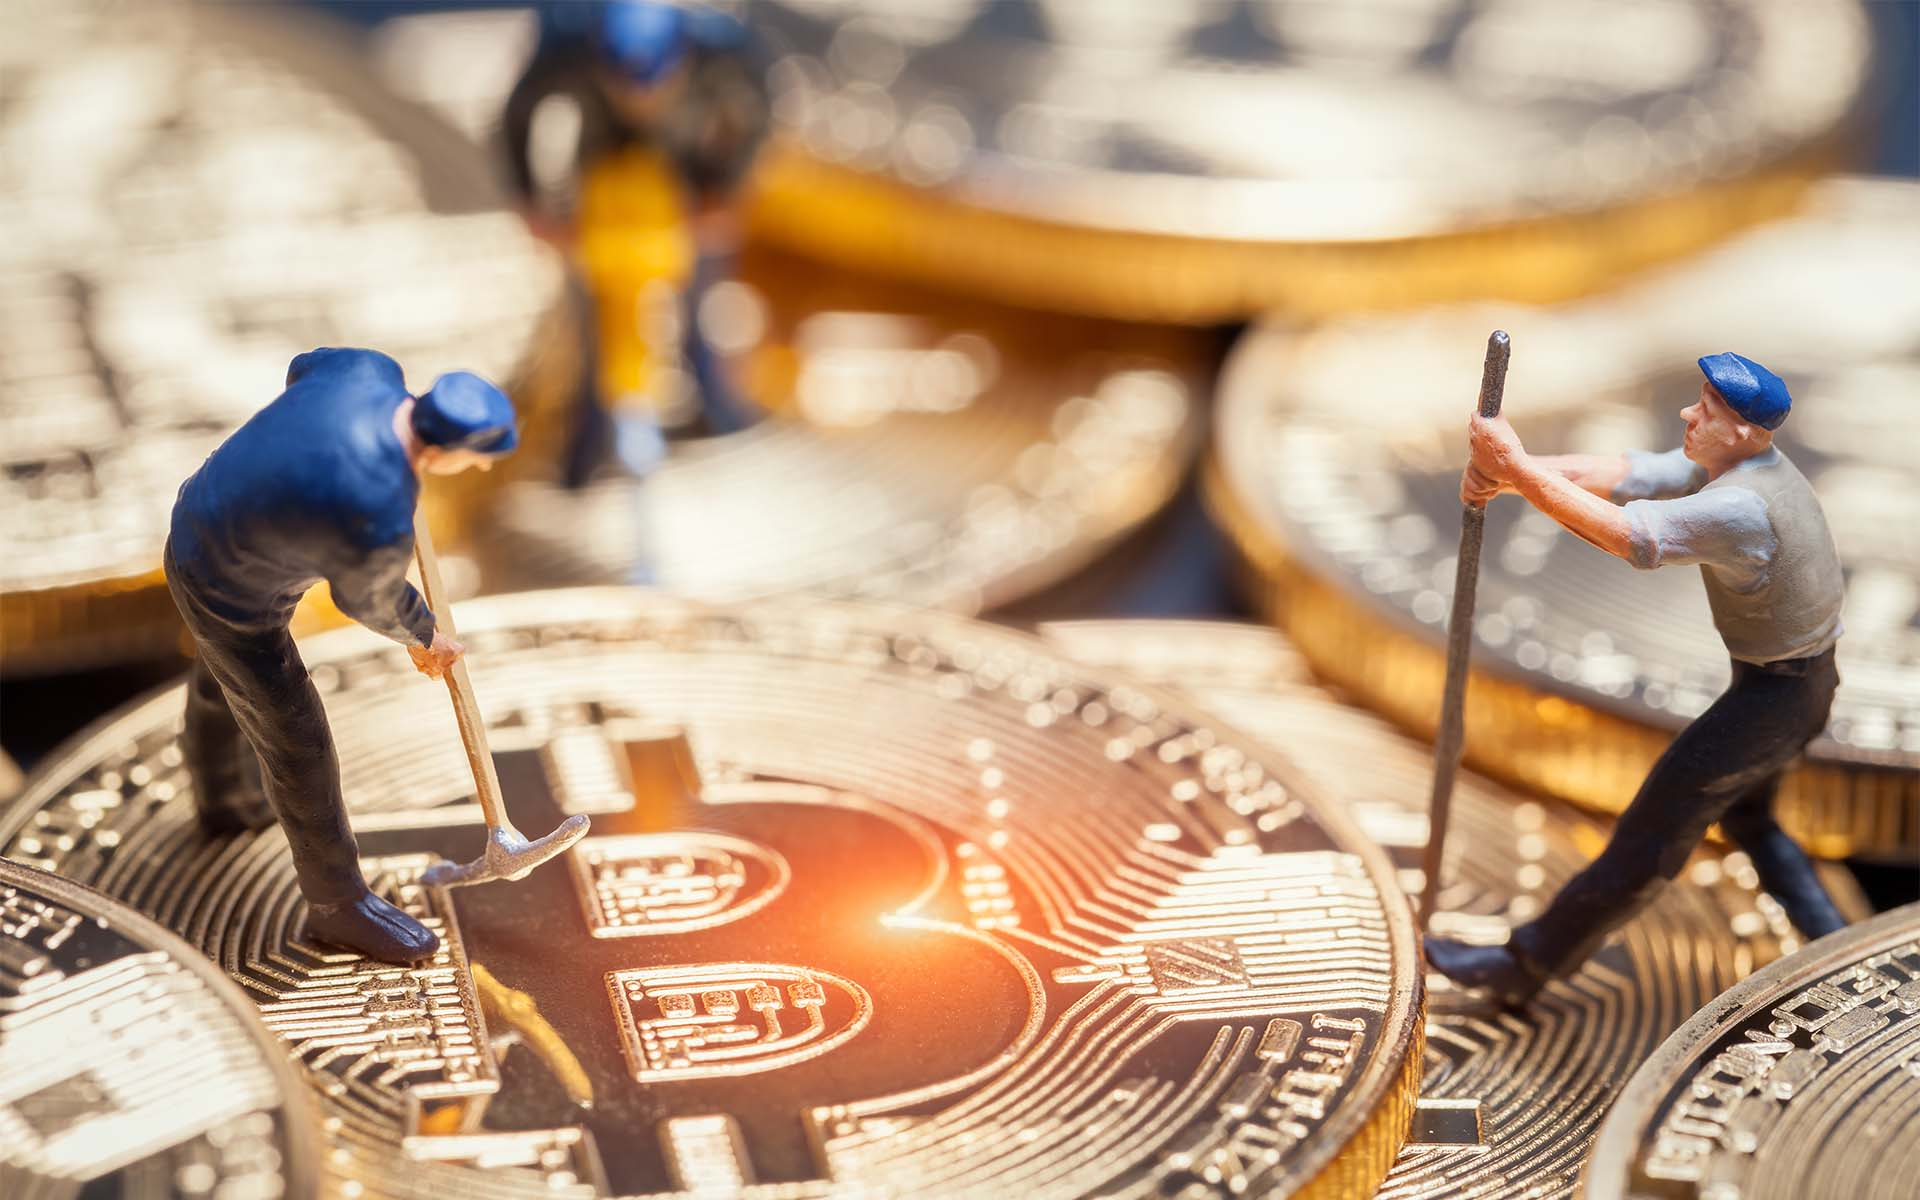 'Is Crypto Mining The Public?' Goldbugs Tell Media Gold Will Be Great Again